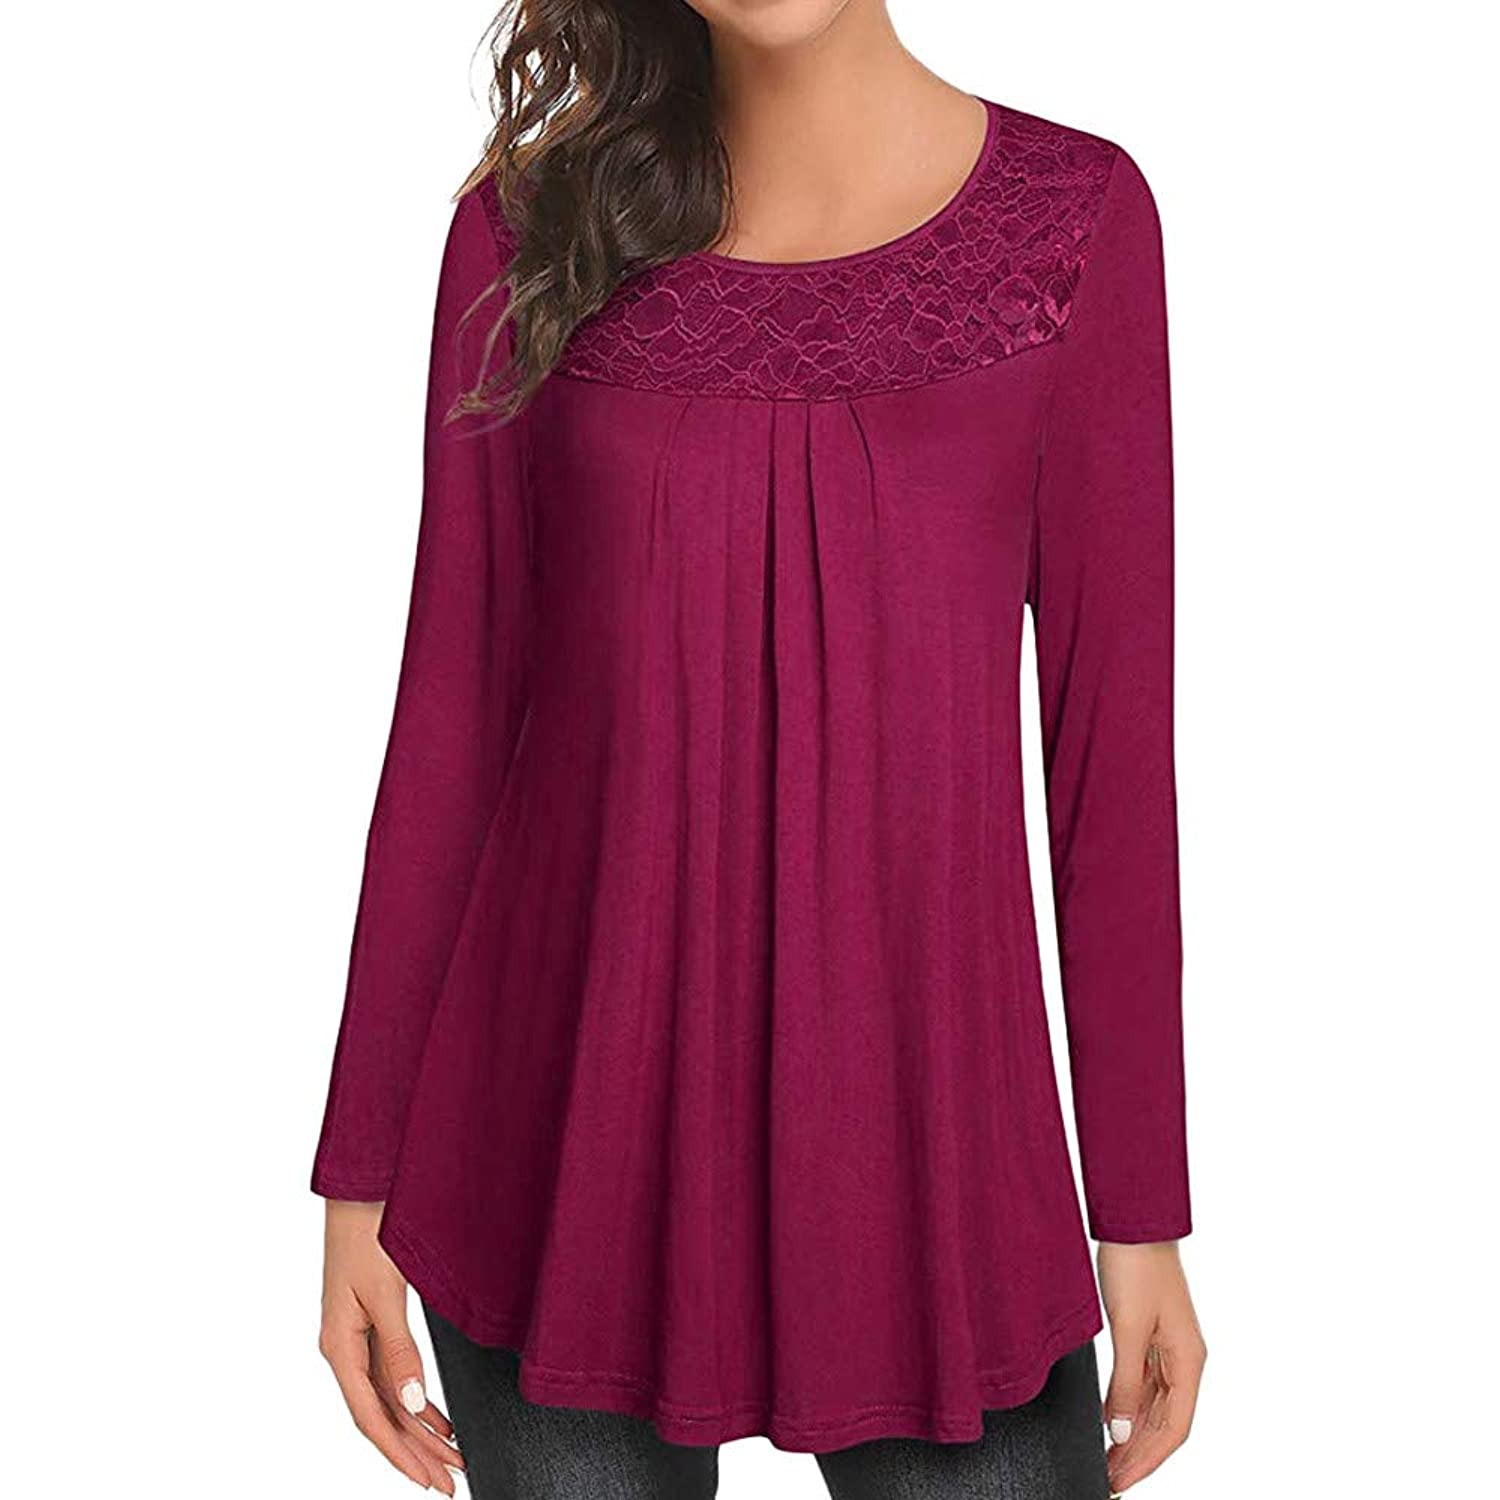 040e1746b1 Top5  vermers Clearance! Women Tunic Tops Womens Casual Solid Lace  Patchwork Ruched O-Neck Long Sleeve T-Shirt Blouse